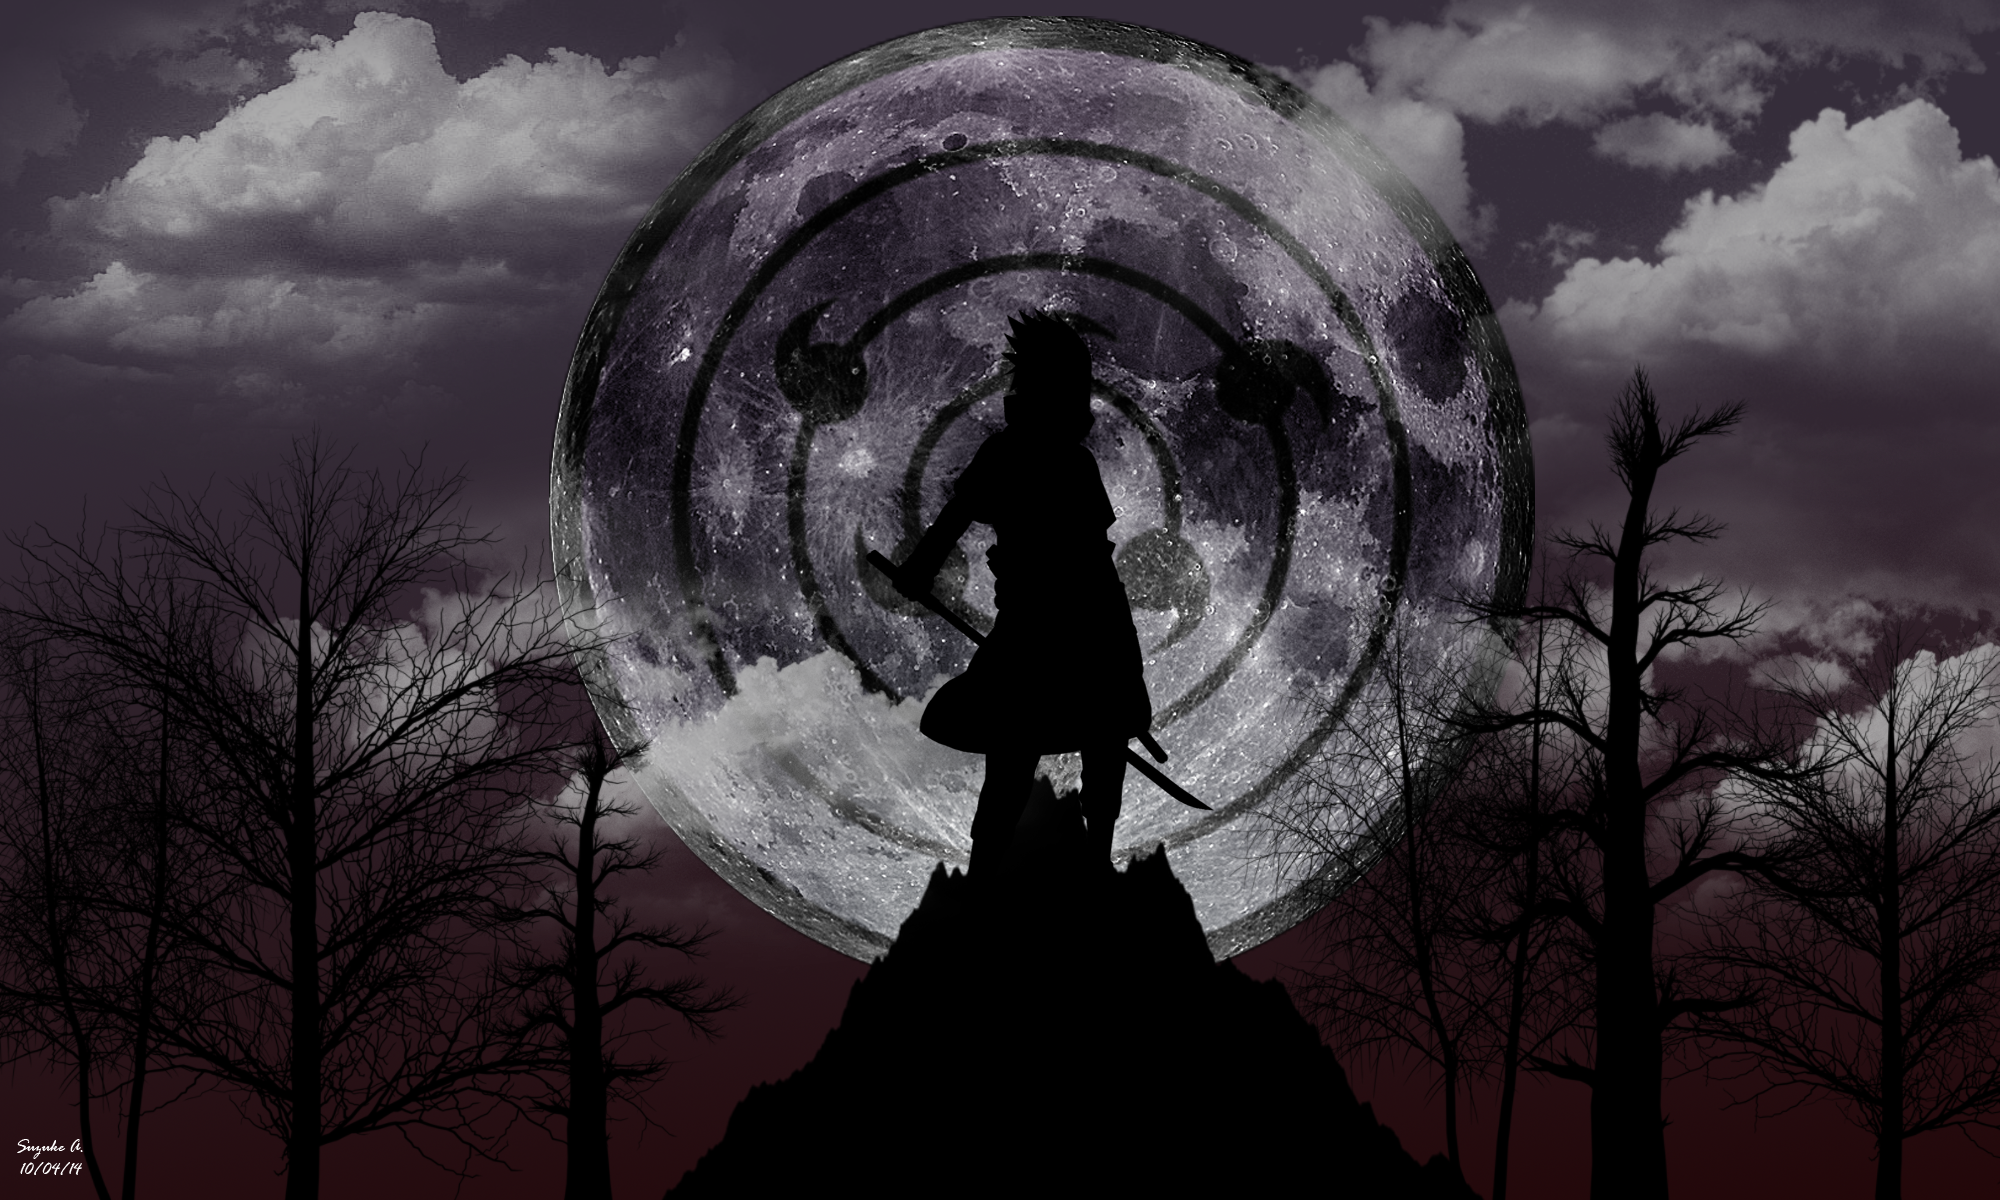 Sasuke Uchiha Rinnegan [Moon Eye] Wallpaper by SuzukeAmaterasu on 2000x1200